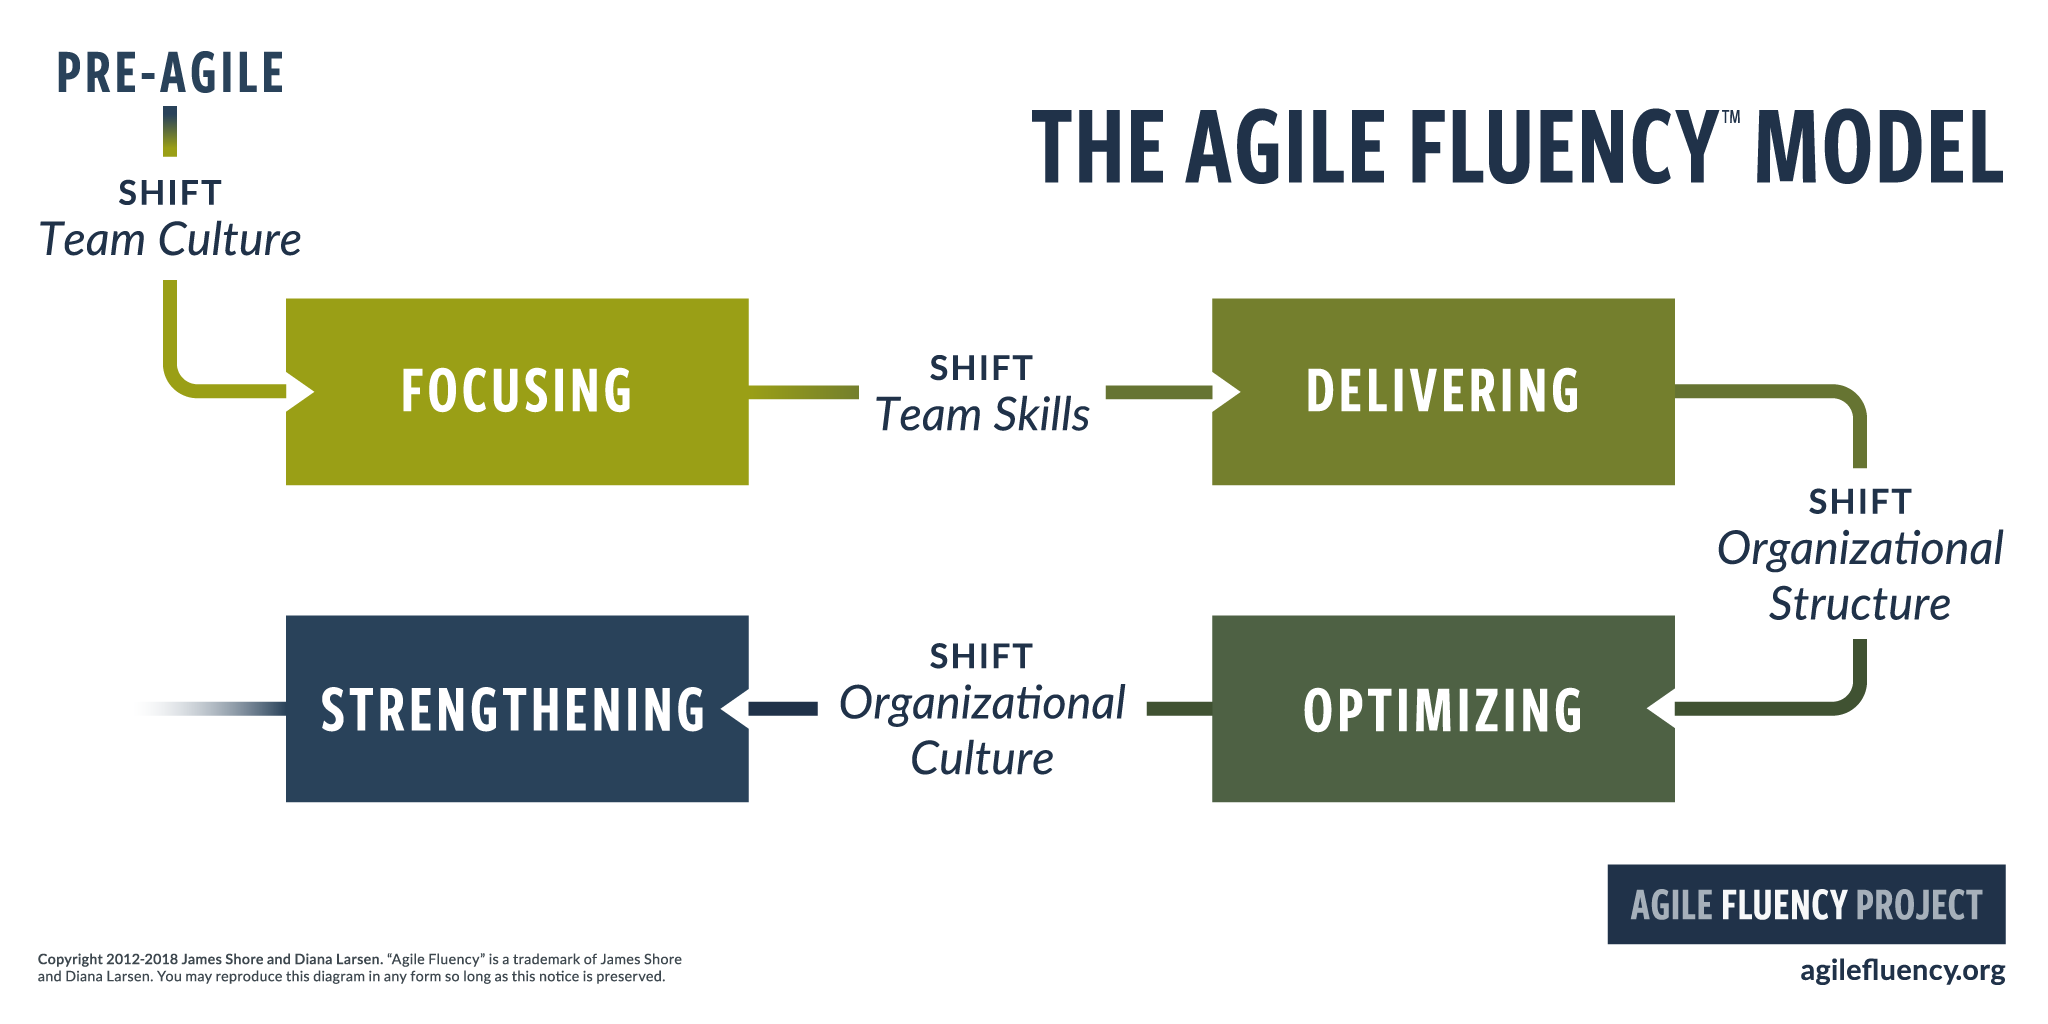 The Agile Fluency Model, showing a path starting with 'Pre-Agile', followed by a team culture shift, then the 'Focusing' zone. The path continues with a team skills shift that leads to the 'Delivering' zone. Next, an organizational structure shift leads to the 'Optimizing' zone. Finally, an organizational culture shift leads to the 'Strengthening' zone. After that, the path fades out as it continues on to zones yet undiscovered.